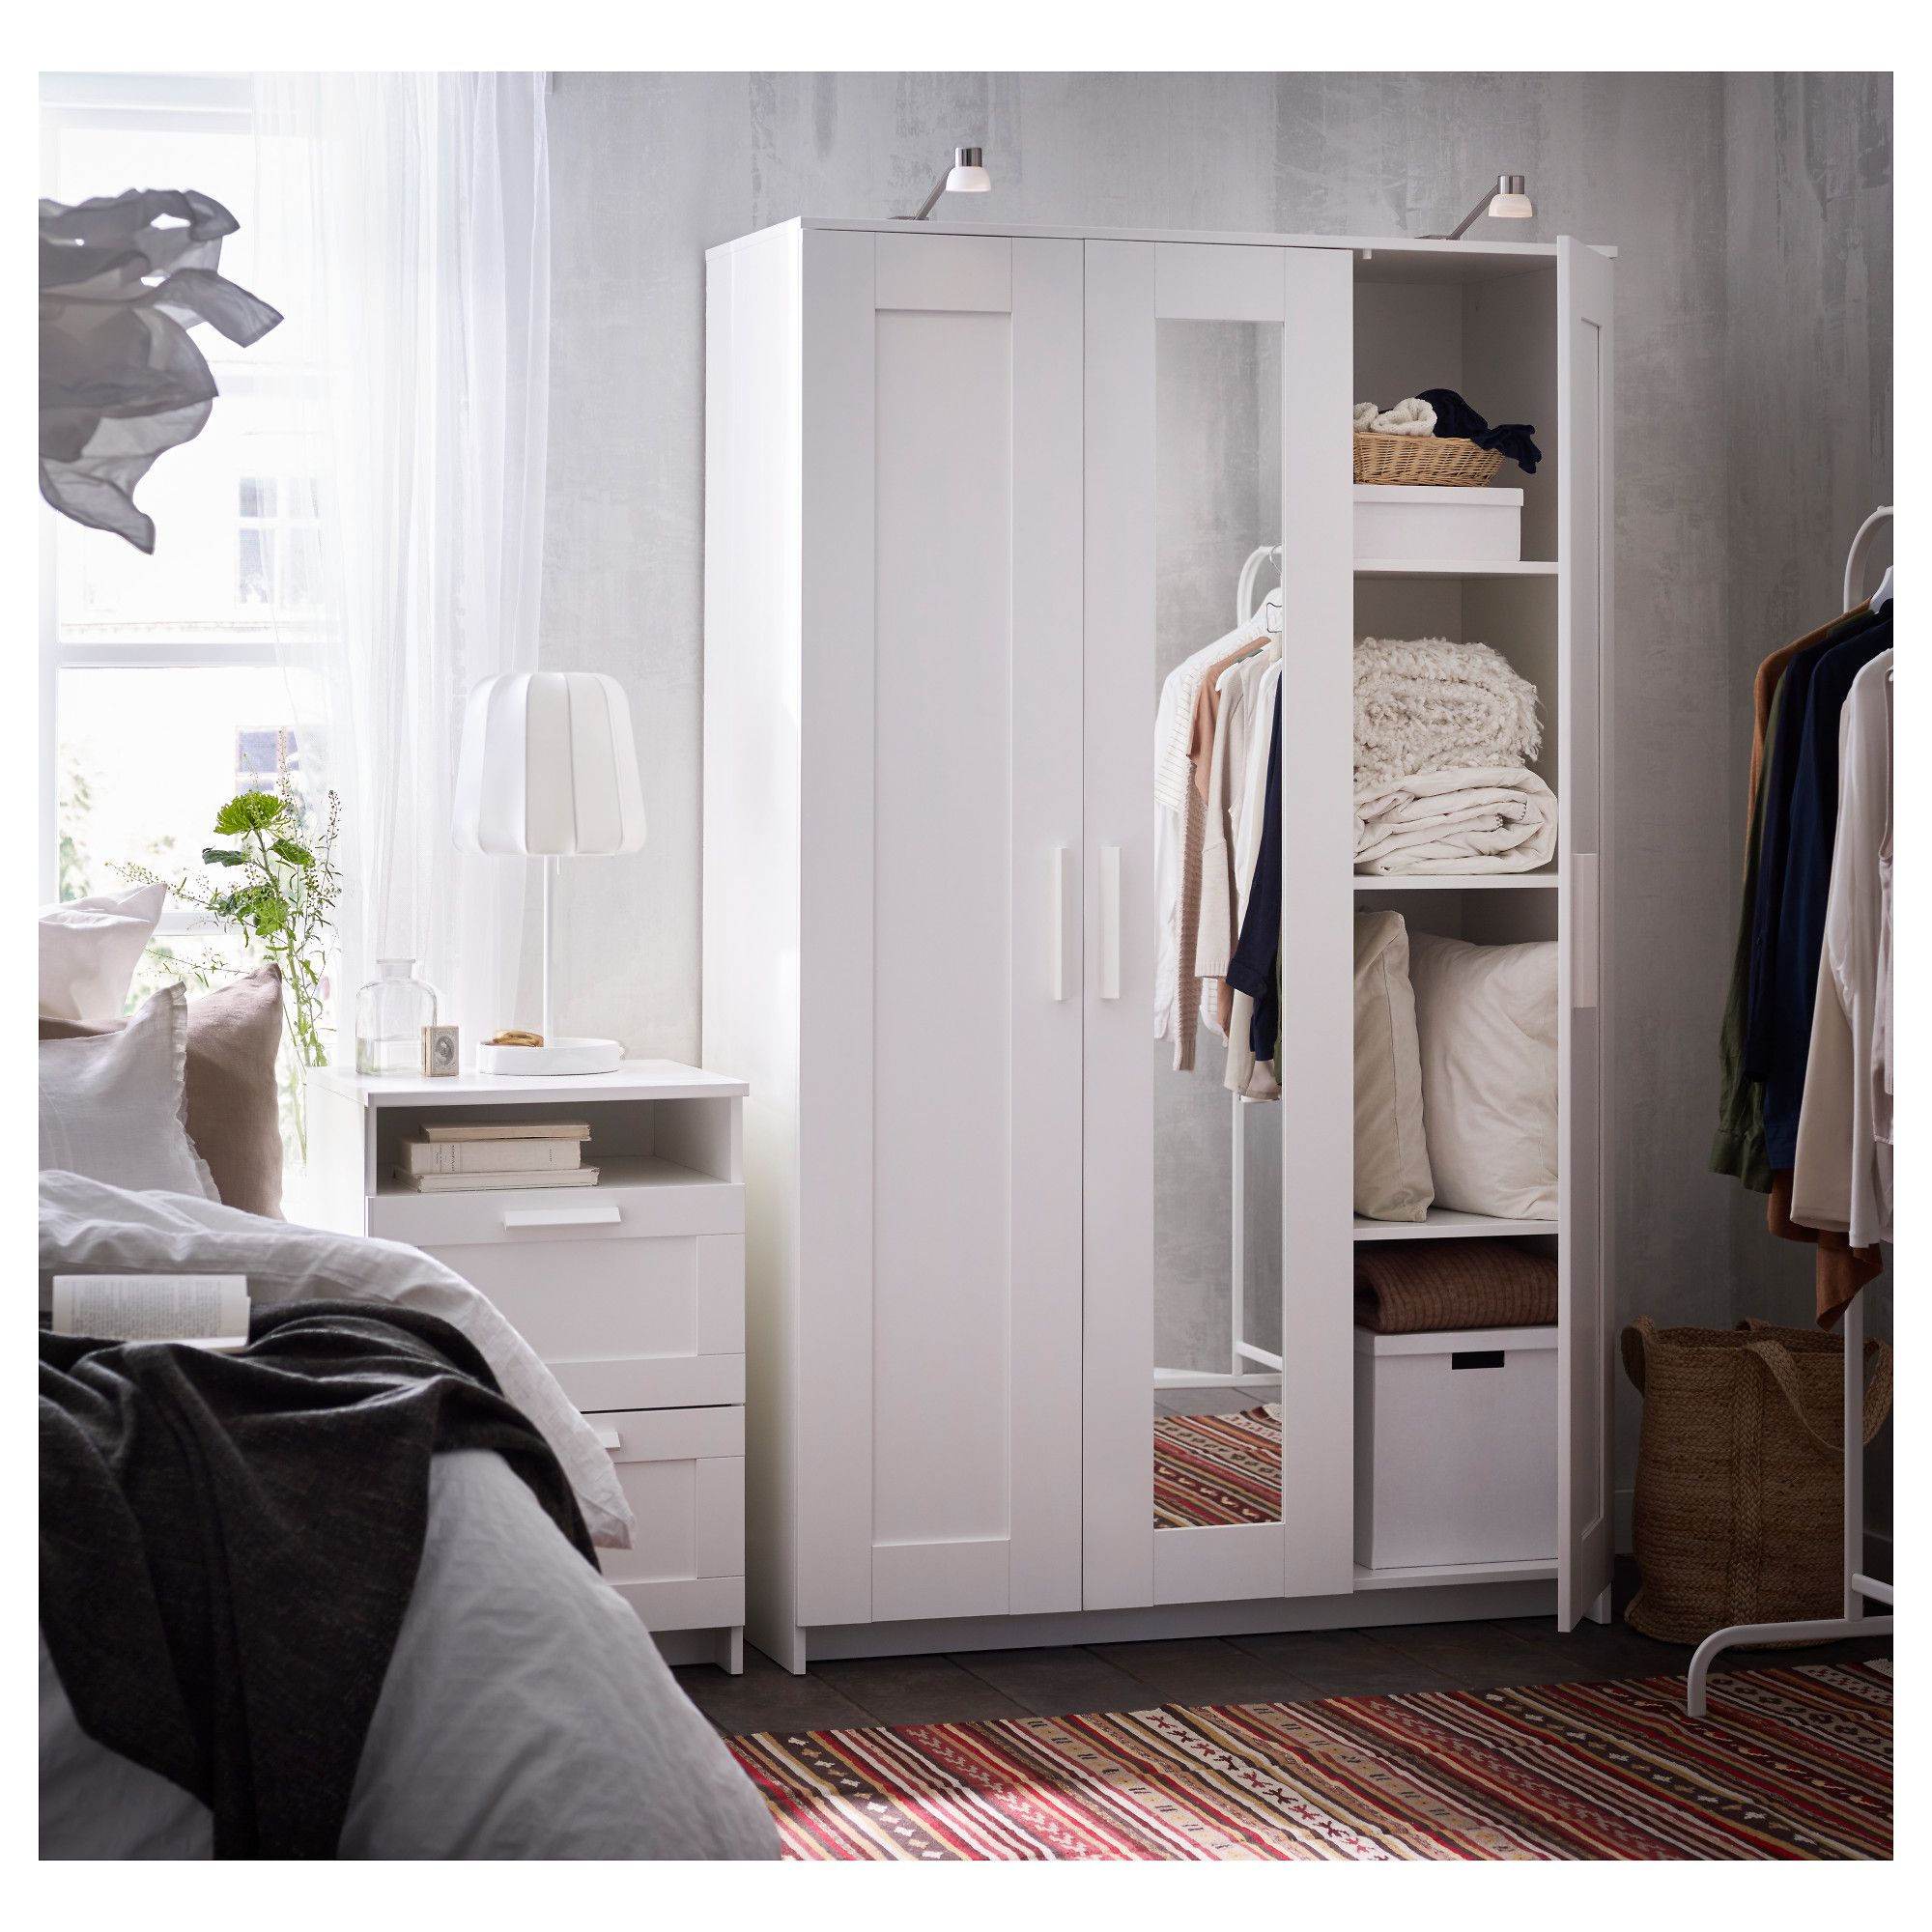 Ikea Schrank 100 X 60 Brimnes Wardrobe With 3 Doors White Decorating The Arlington Cape